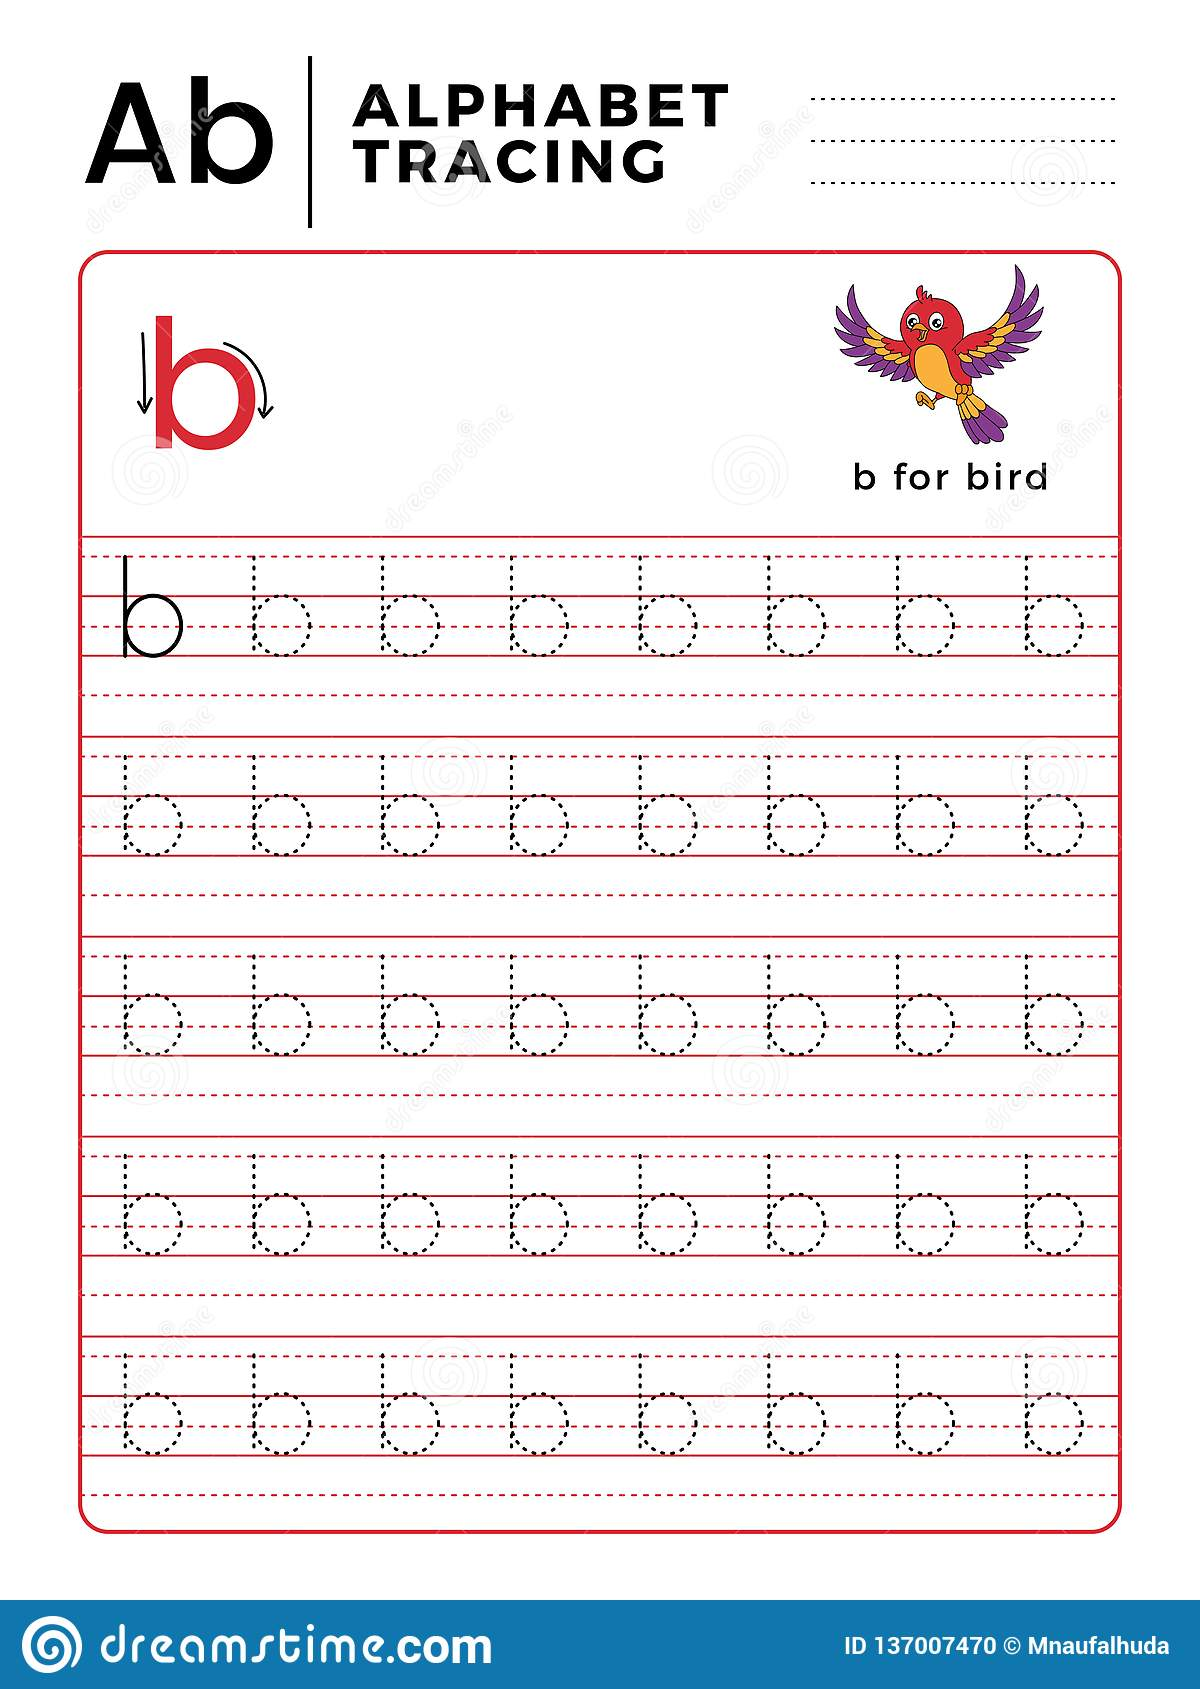 Letter B Alphabet Tracing Book With Example And Funny Bird